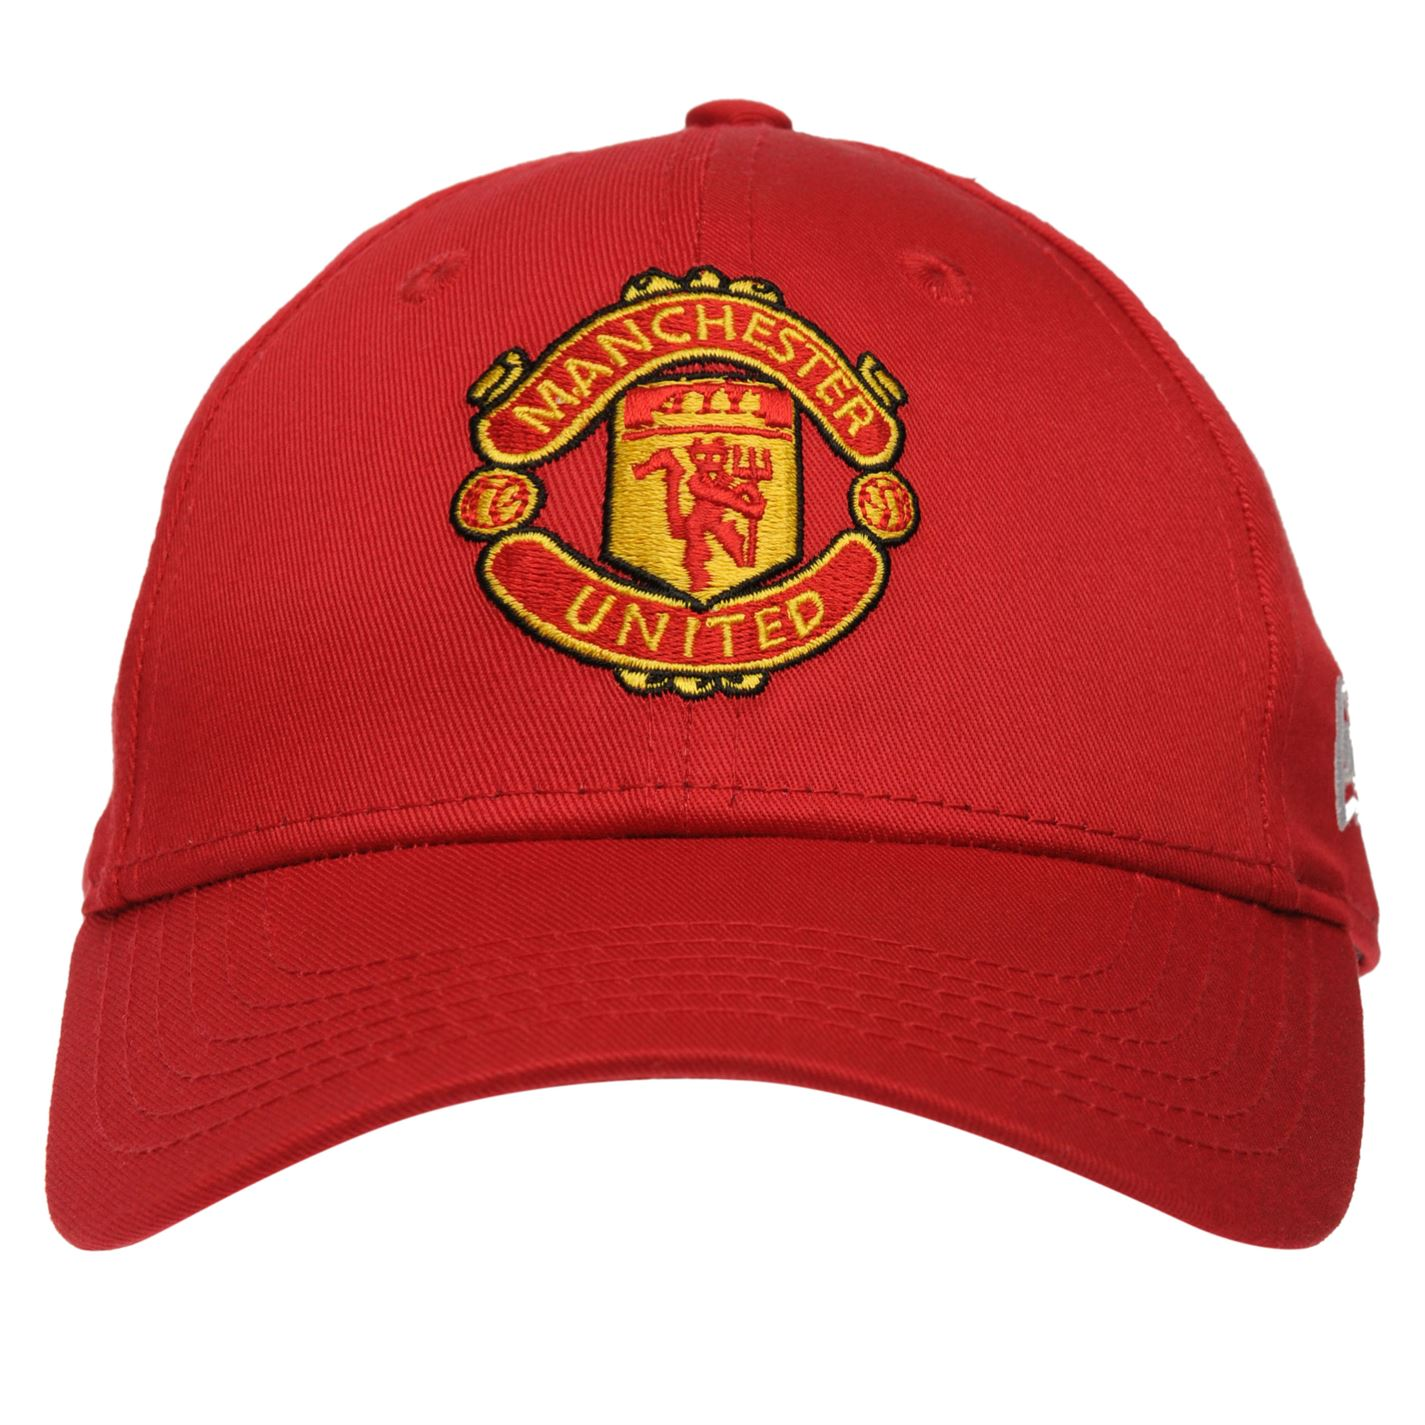 New Era Man United Childrens Cap Baseball Mesh Football